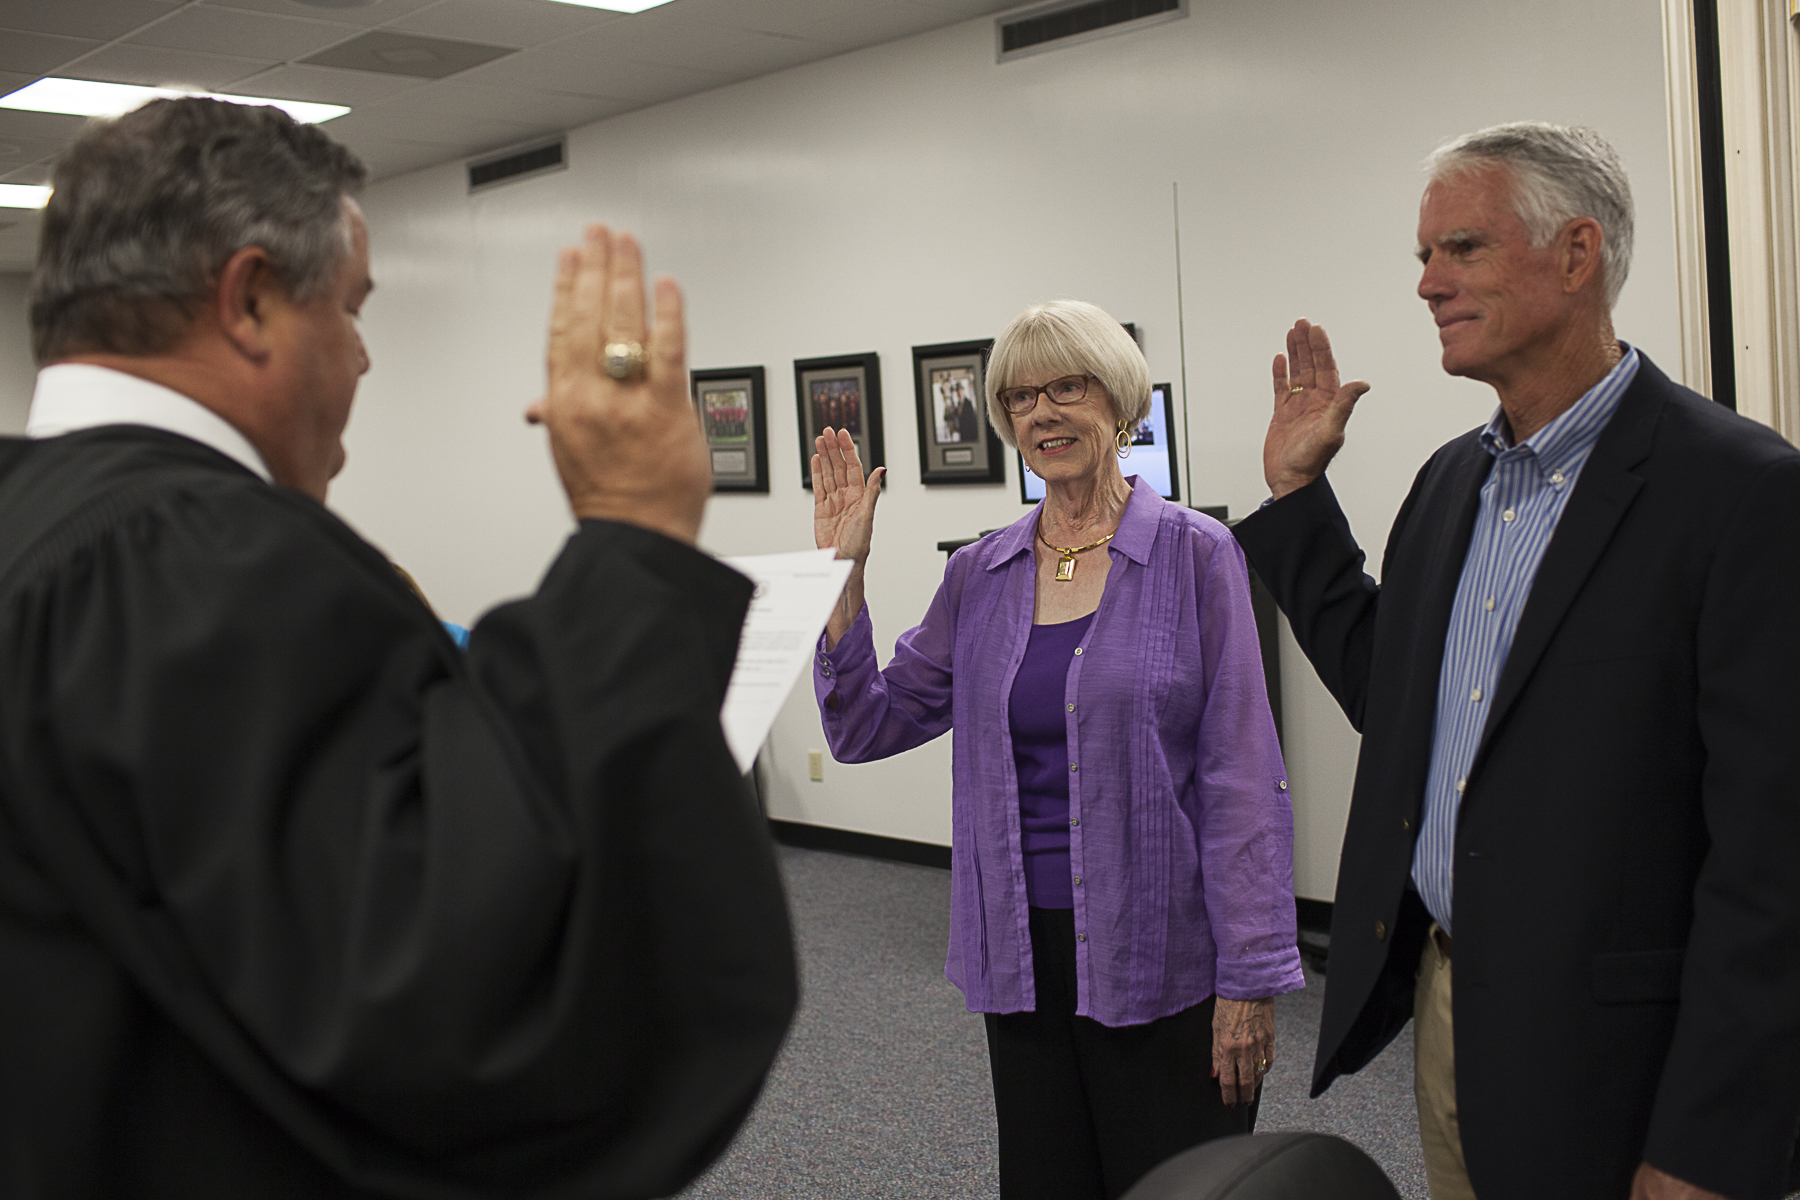 BOARD OF TRUSTEES MEMBERS SWORN IN